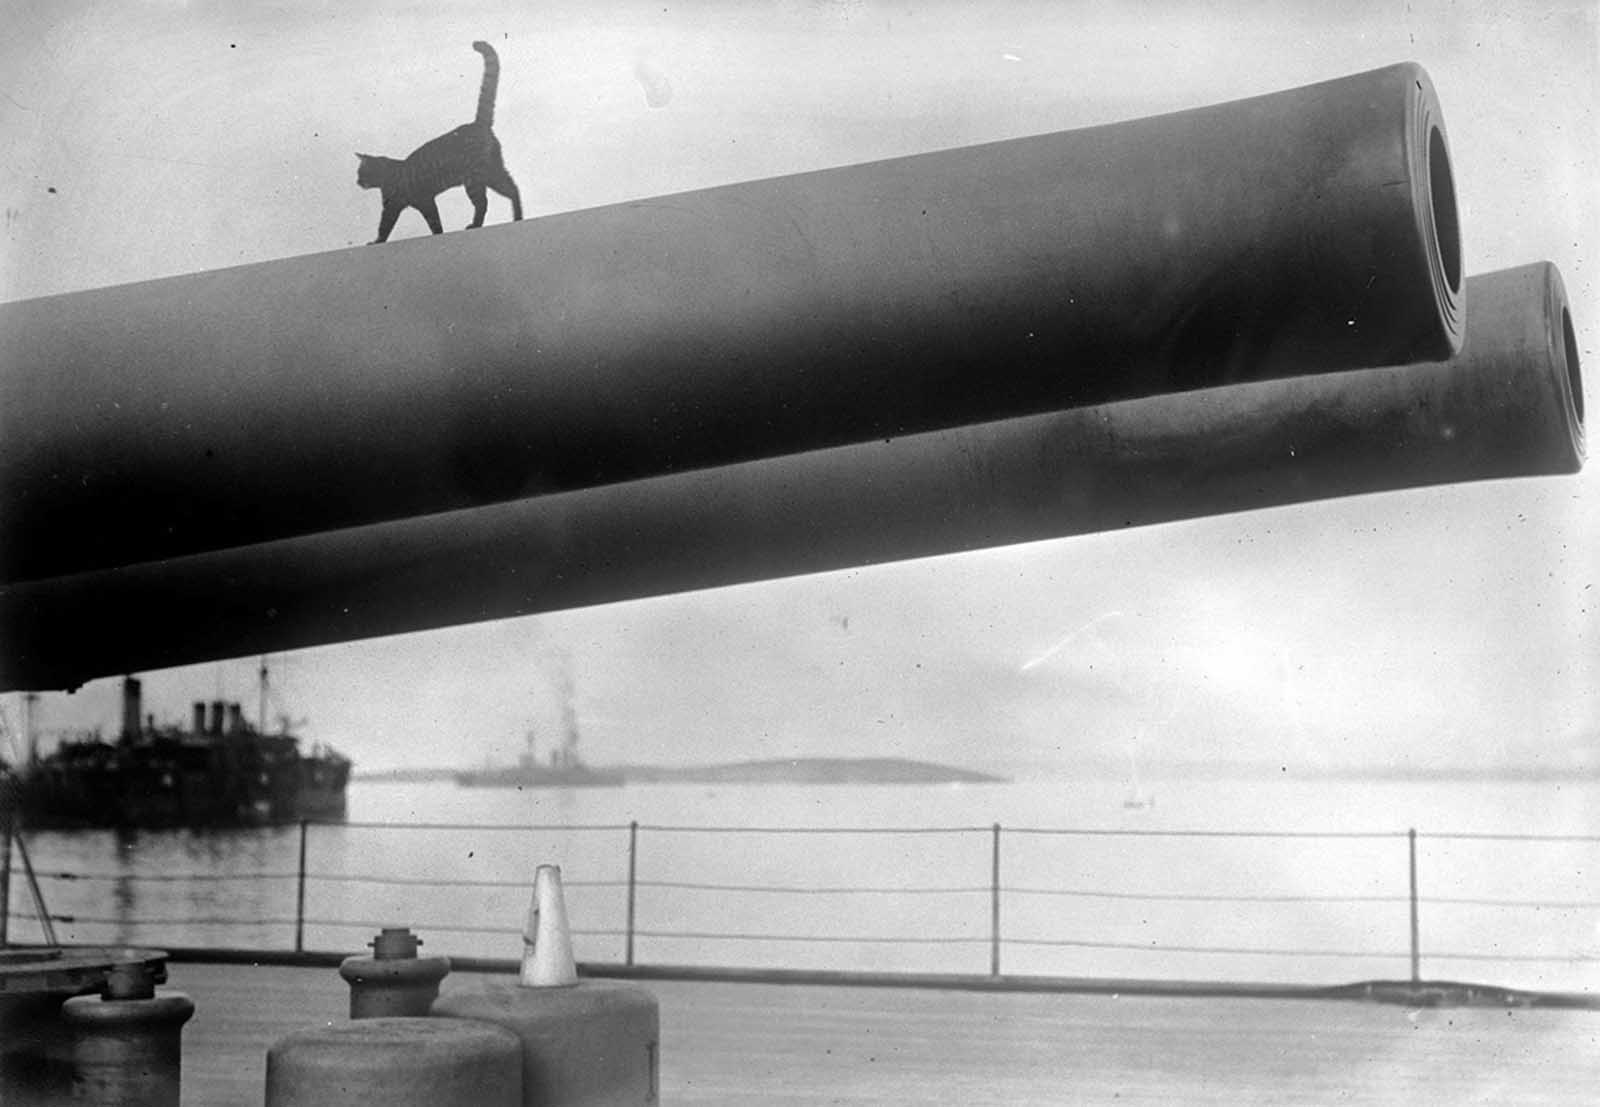 A cat, the mascot of the HMS Queen Elizabeth, walks along the barrel of a 15-inch gun on deck, in 1915.